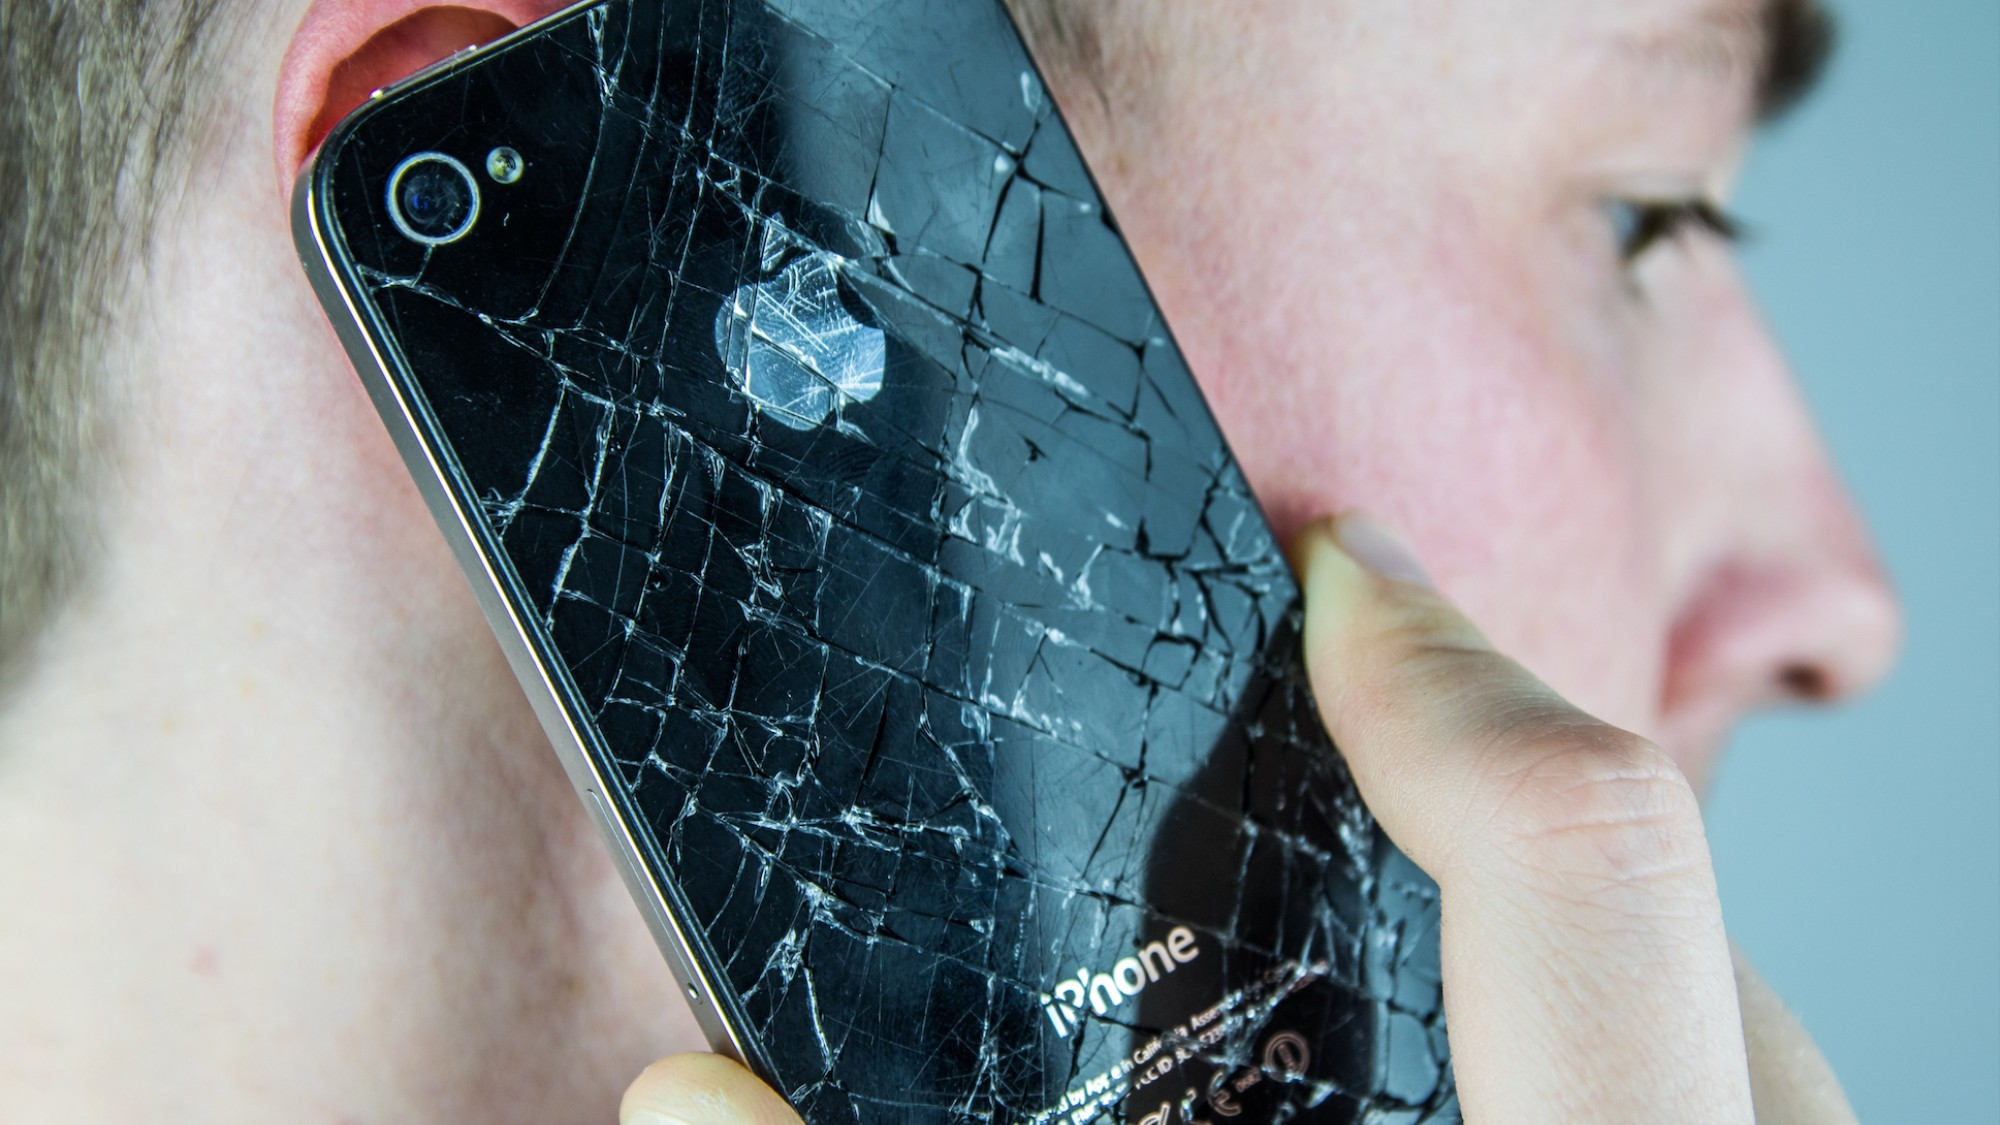 The Next iPhone Could Put 15,000 Repair Companies Out of Business - VICE